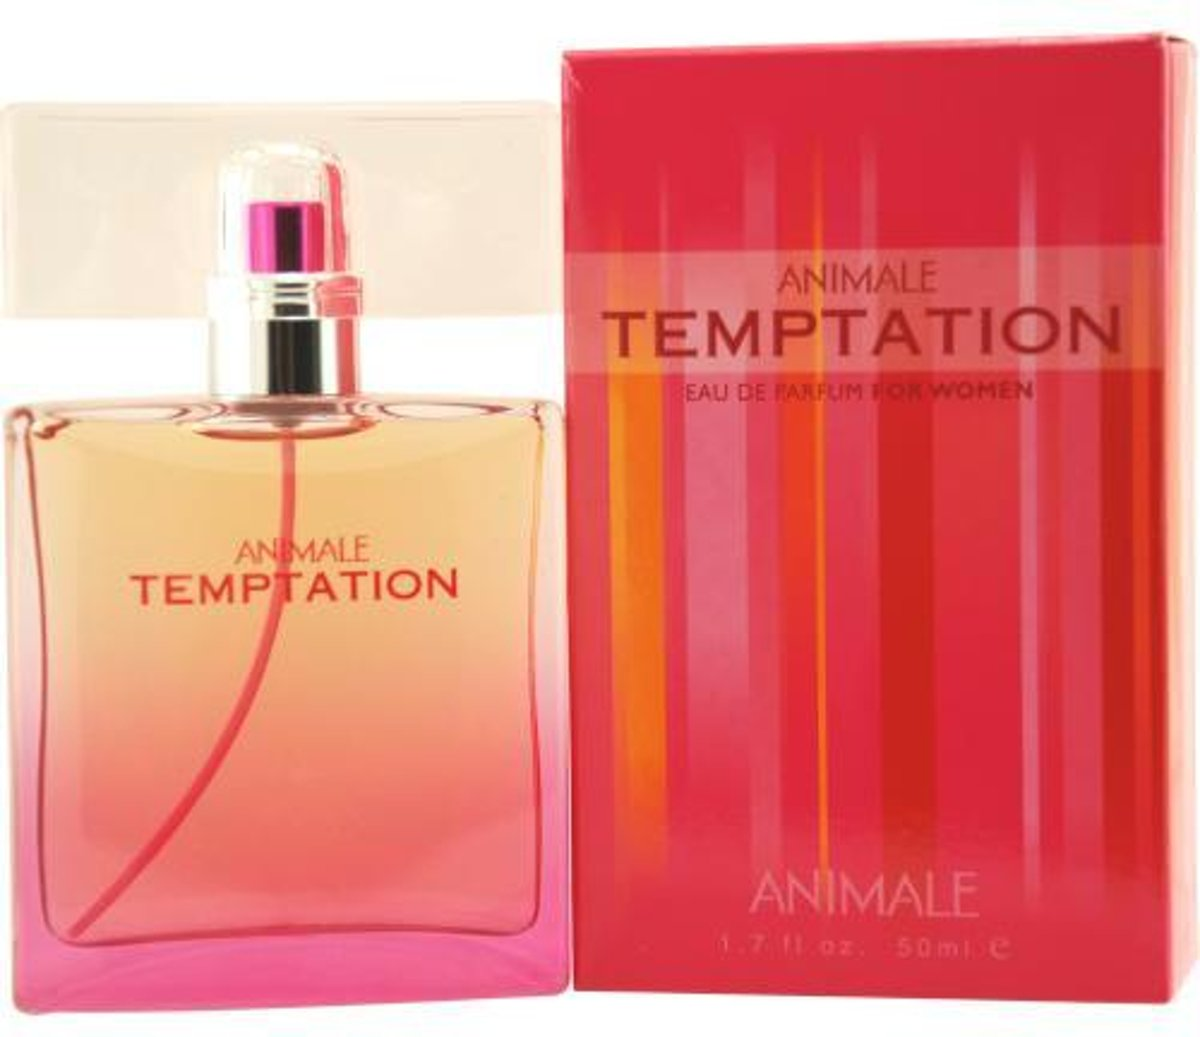 Animale Temptation 50ml EdP Fragrances for Women